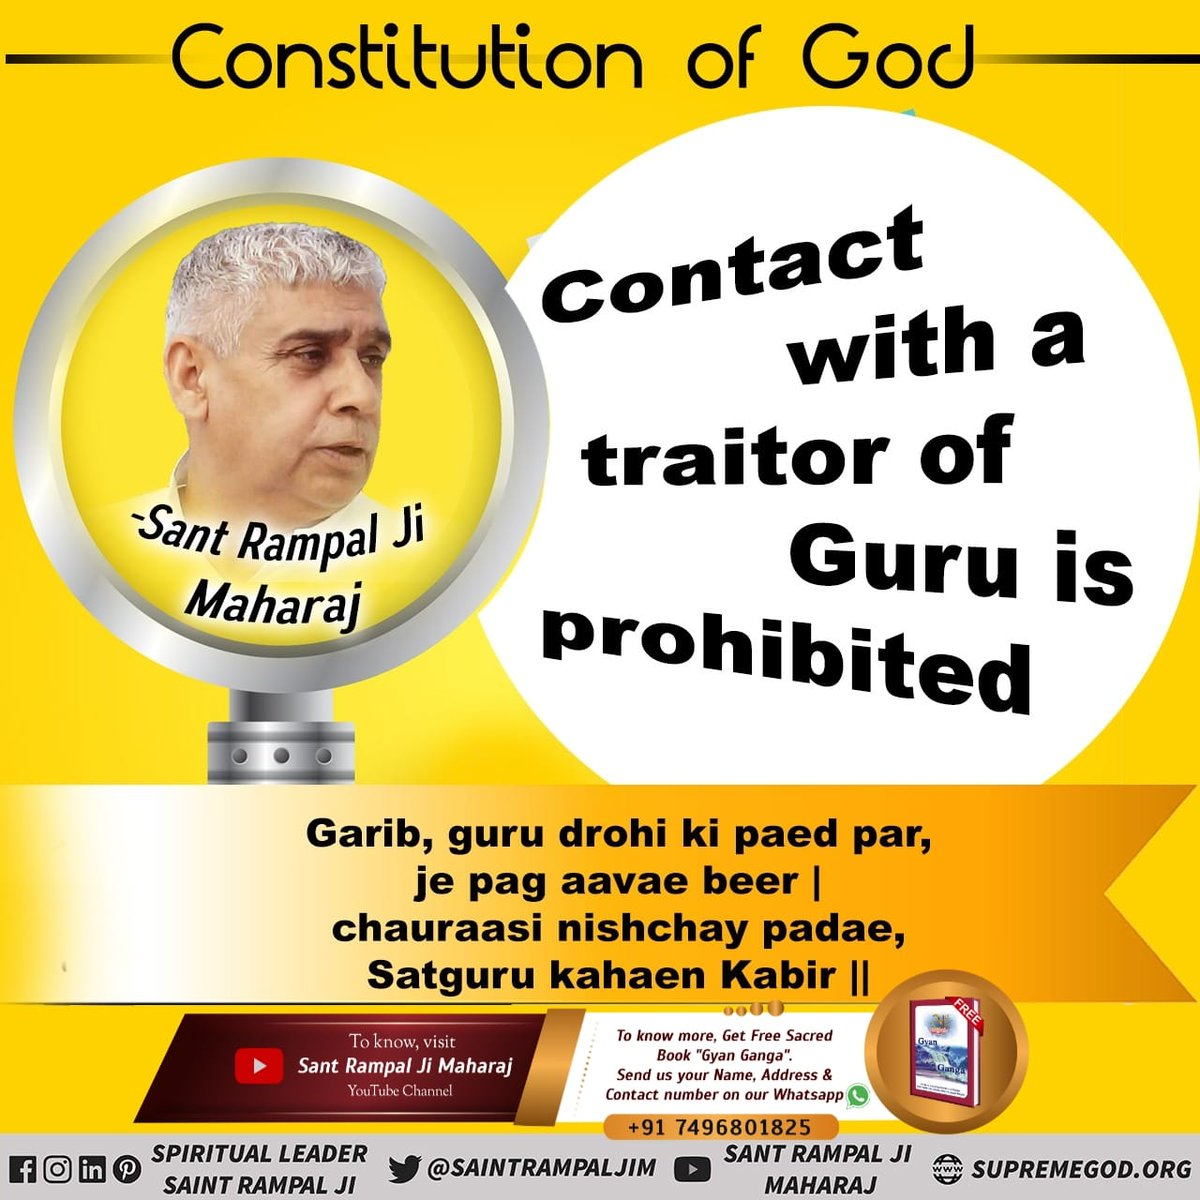 It is prohibited to do worship against the scriptures. - Saint Rampal Ji Maharaj  #ConstitutionOfTheSupremeGod